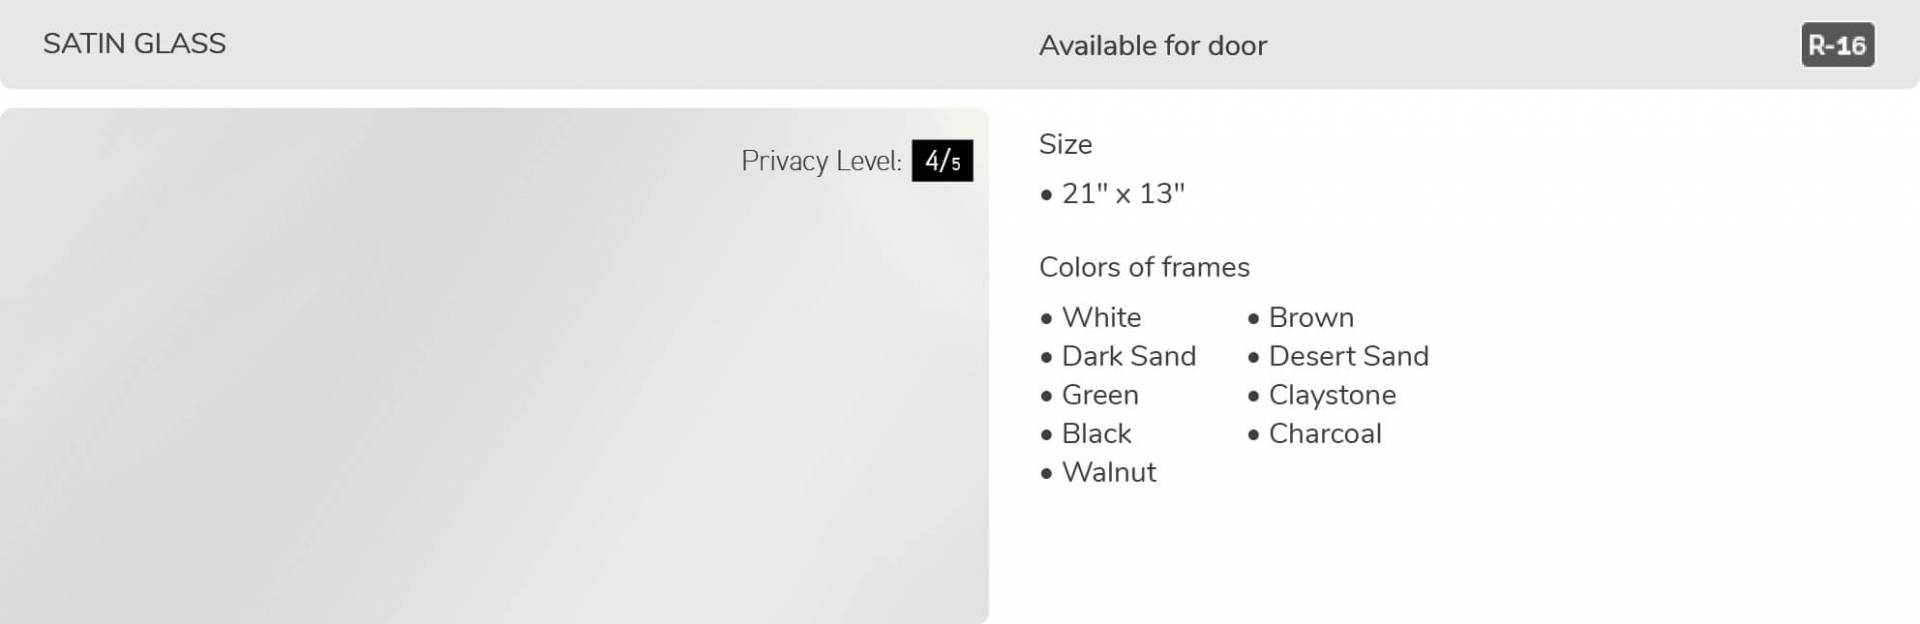 Satin glass, 21' x 13', available for door R-16